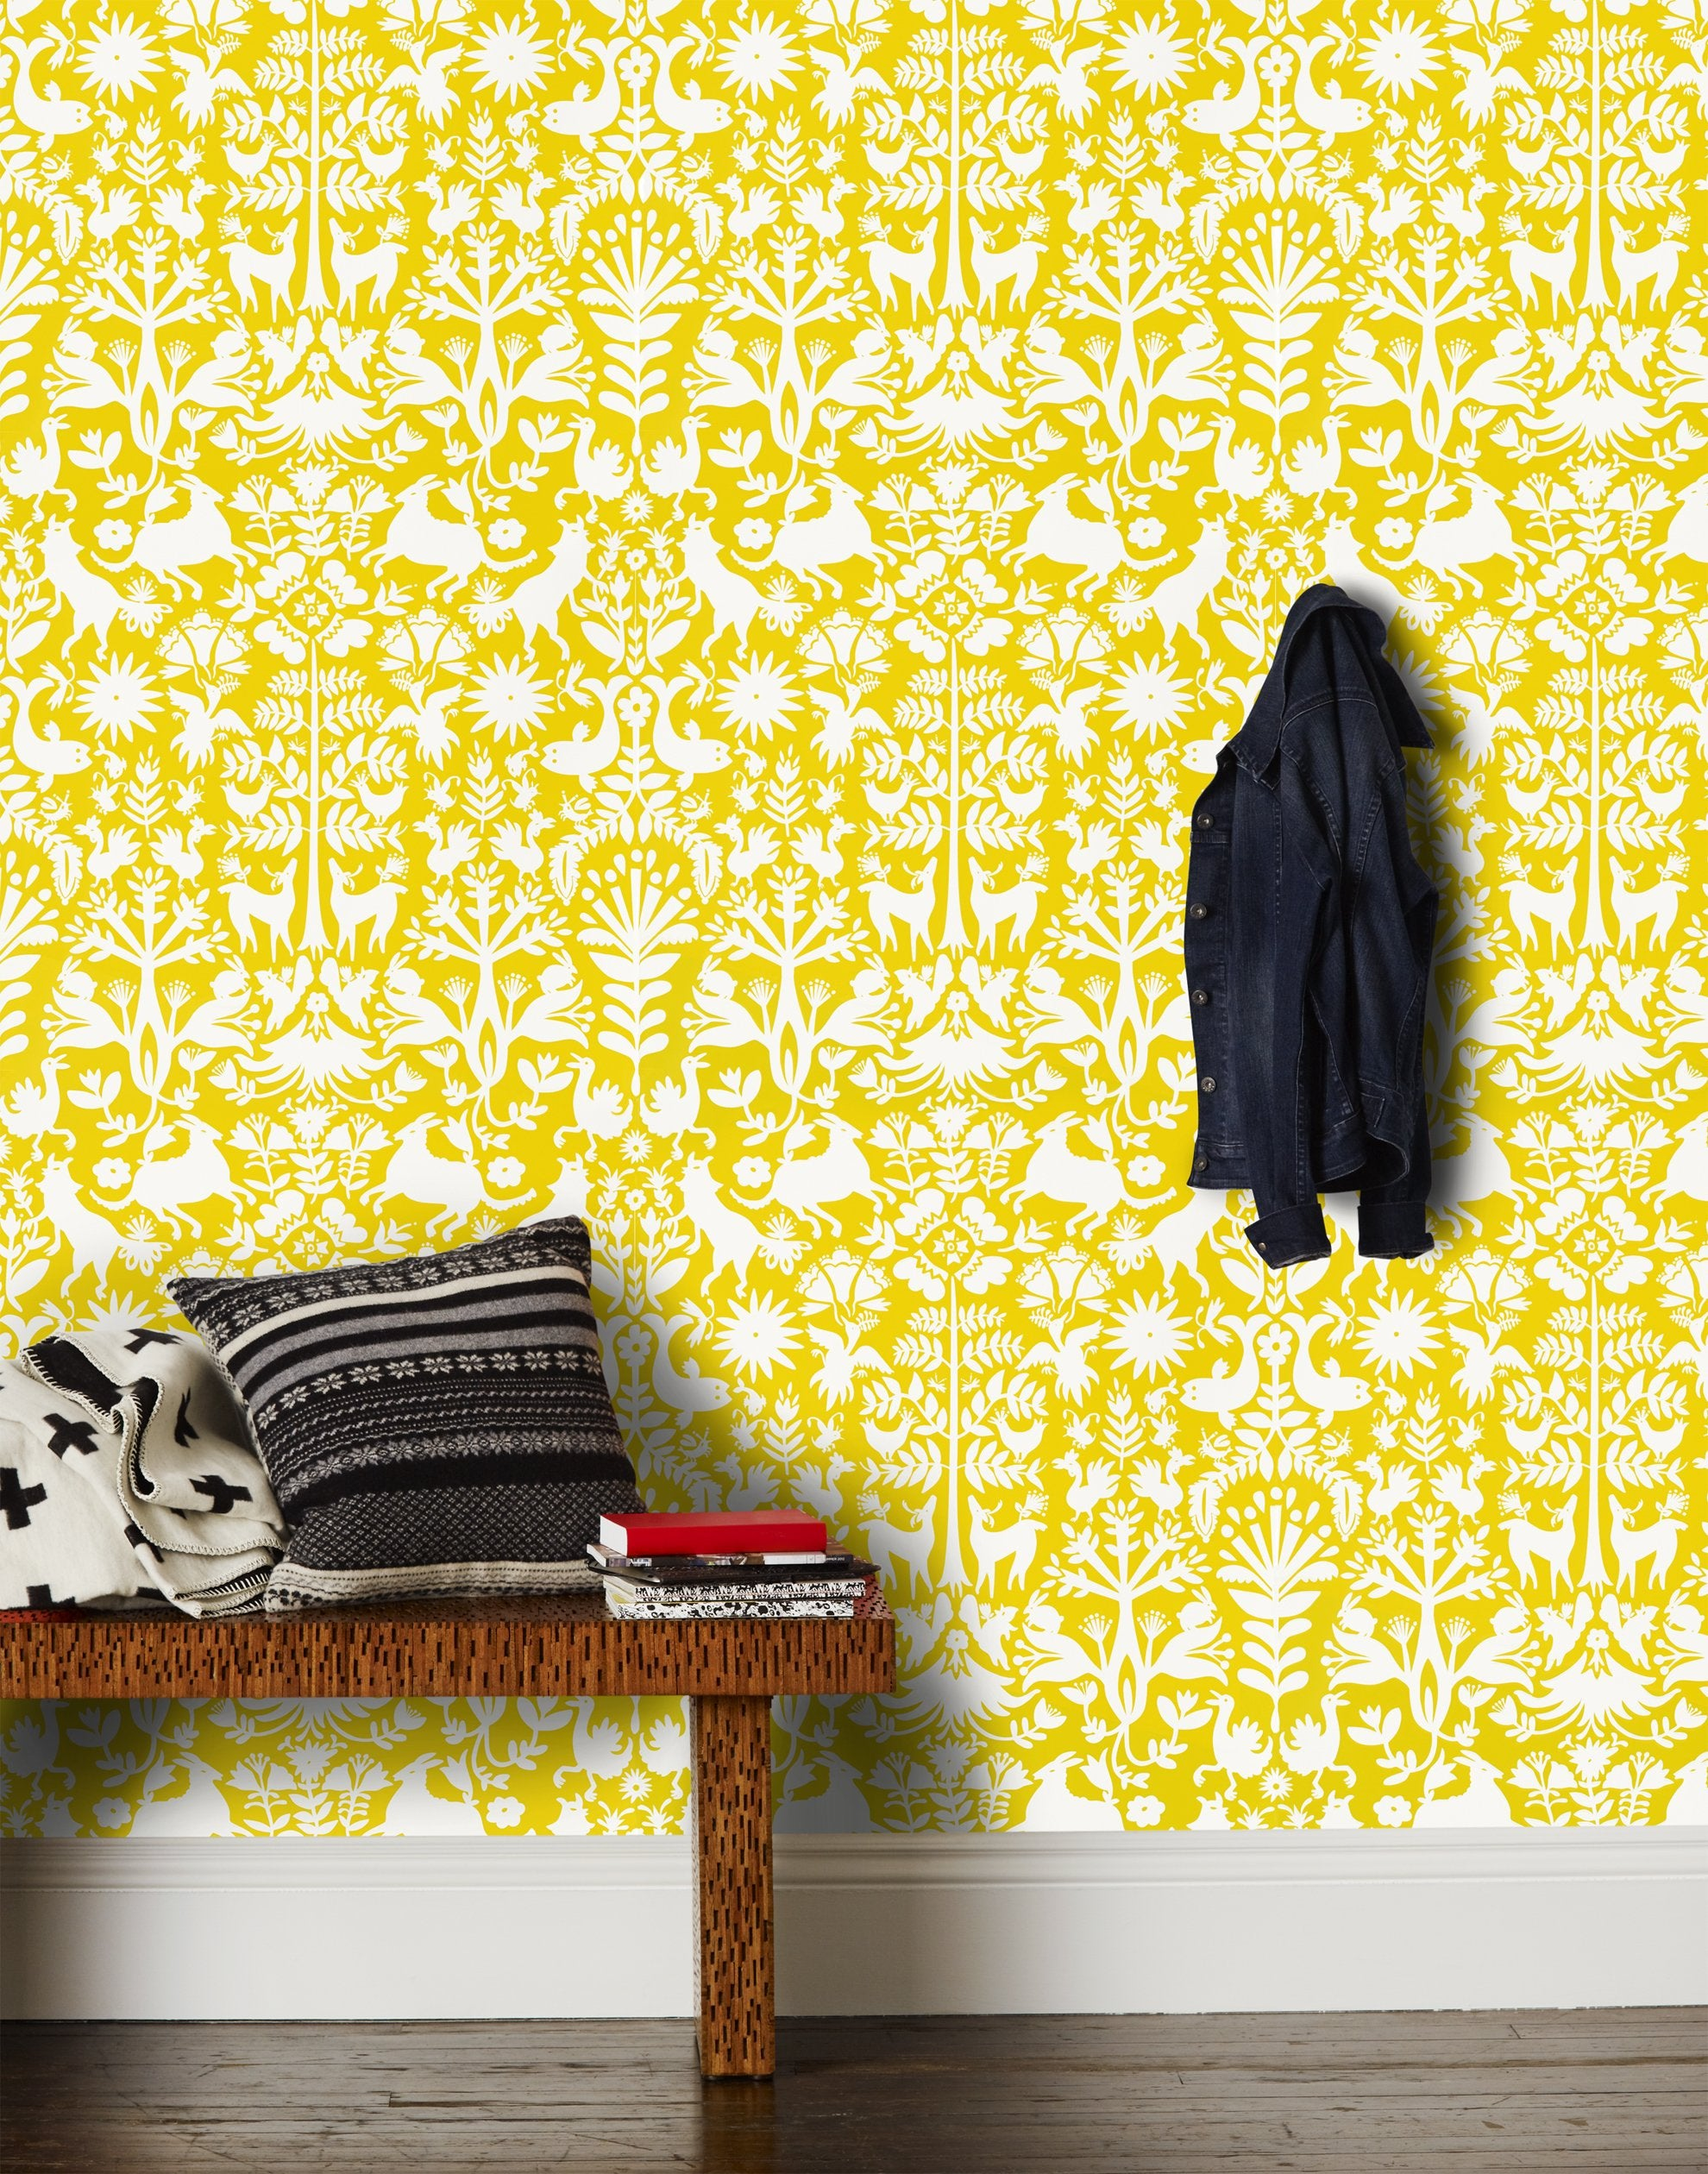 Otomi (Marigold) wallpaper featuring a white Otomi meets Scandinavian folk pattern on a yellow background | Hygge & West x Emily Isabella